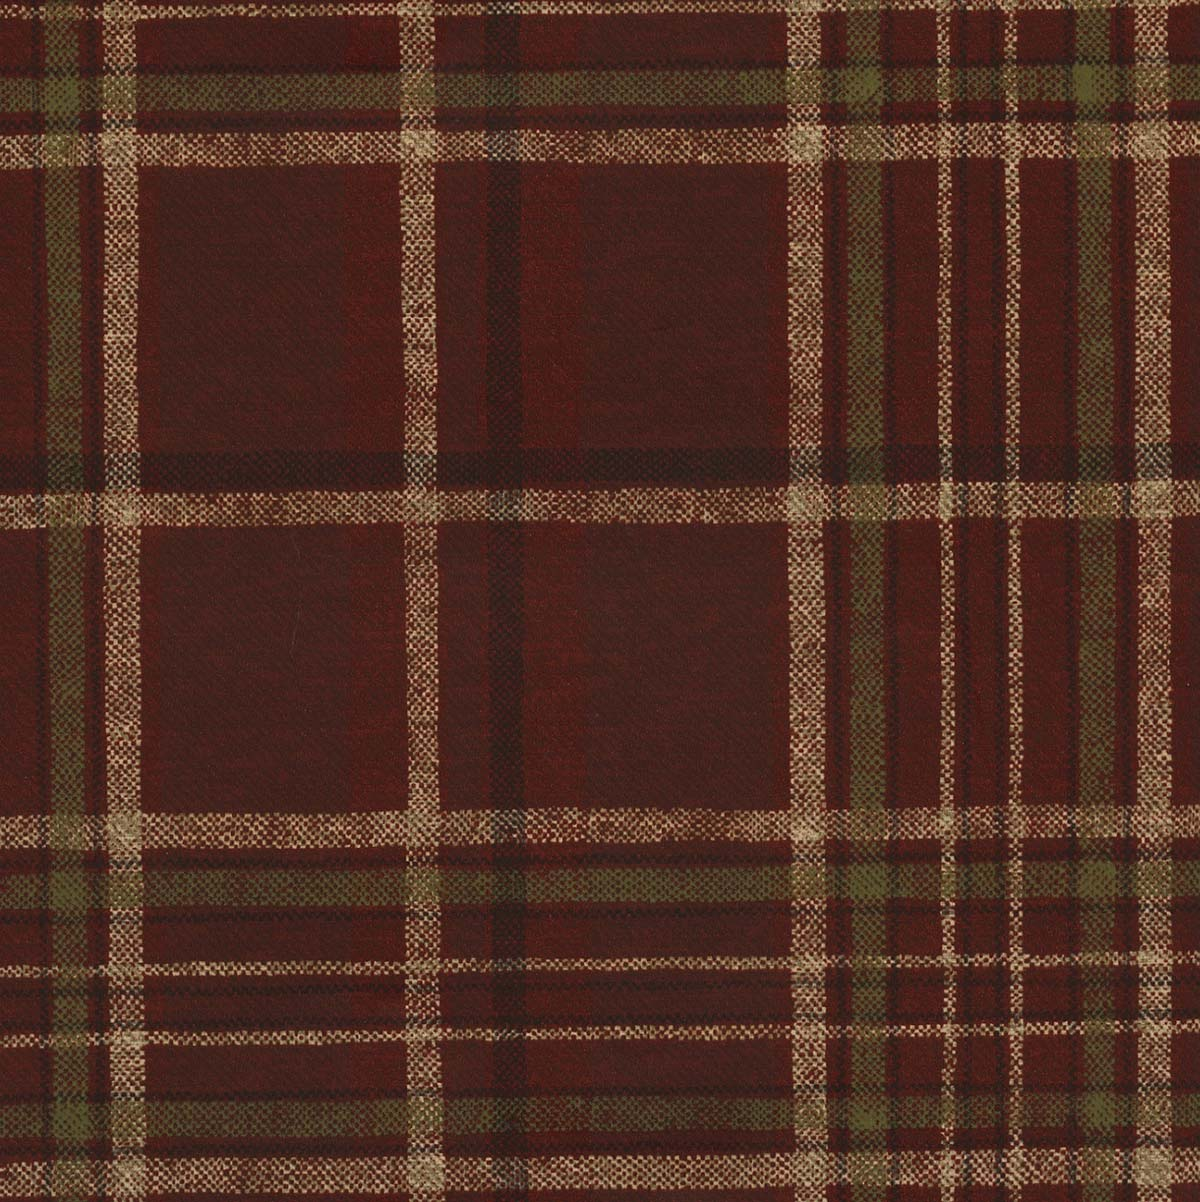 ... wallcoverings - Chesapeake- Outdoors - page 220 - Tartan - HTM49401